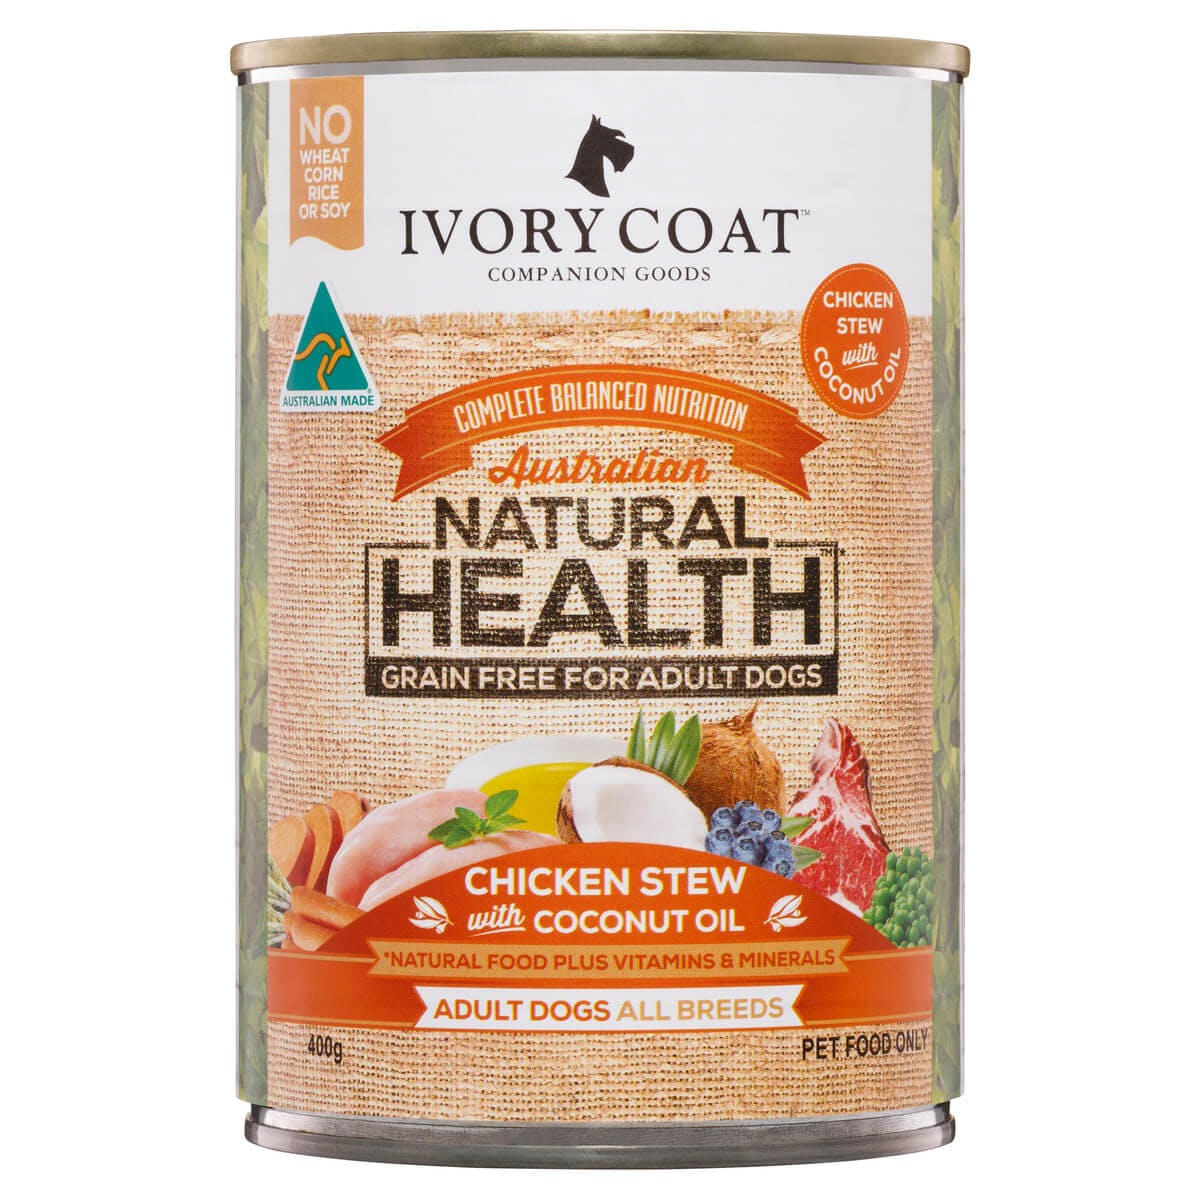 Ivory Coat | Wet Chicken Stew with Coconut Oil 400g | Grain Free Wet Dog Food | Front of pack